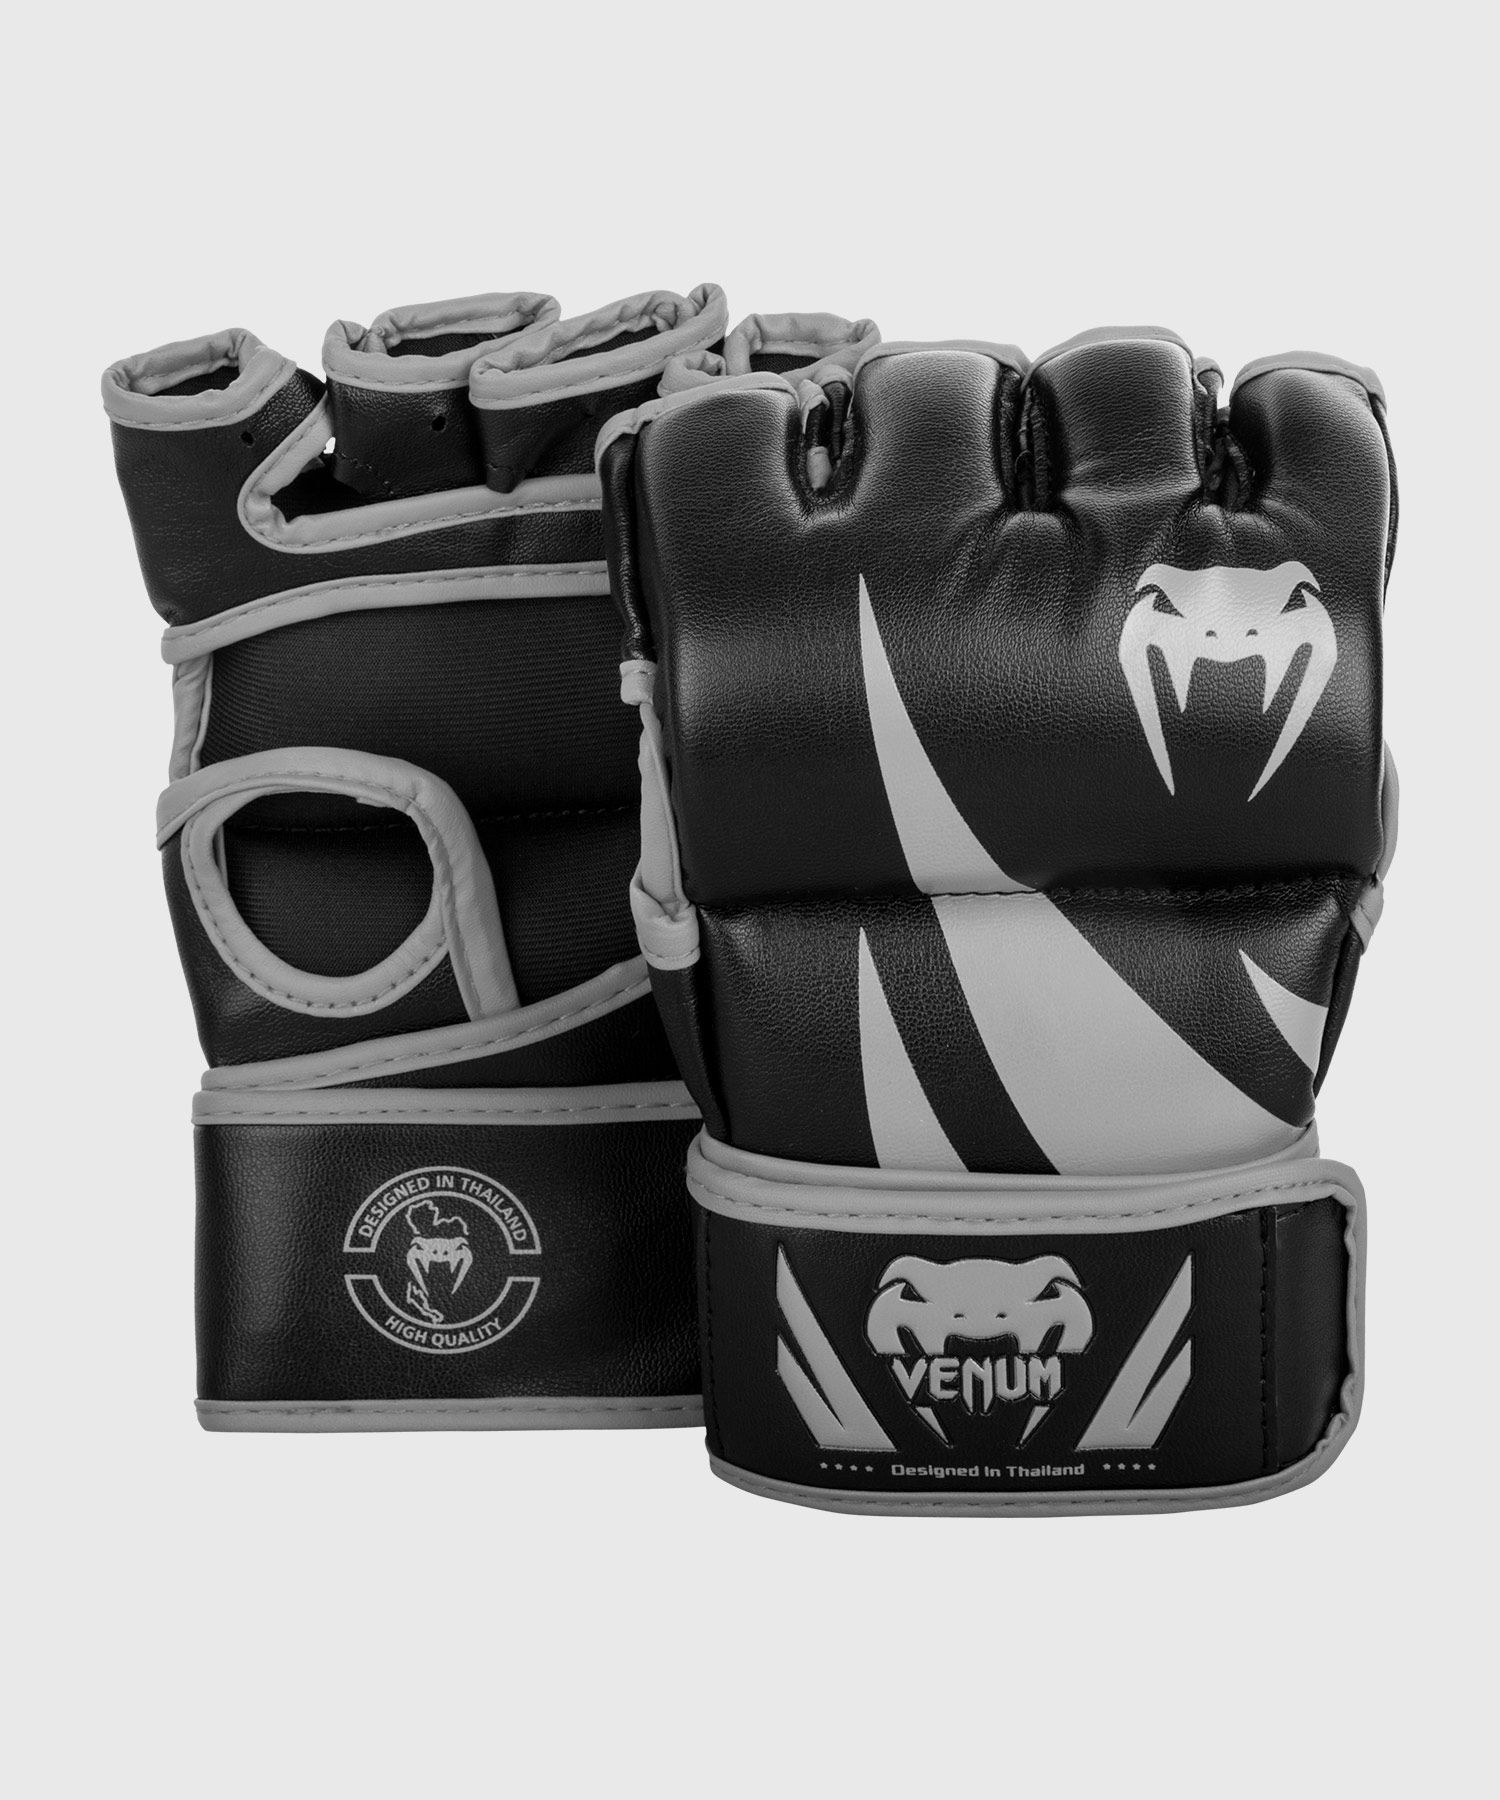 Venum Challenger MMA Gloves - Without Thumb - Black/Grey